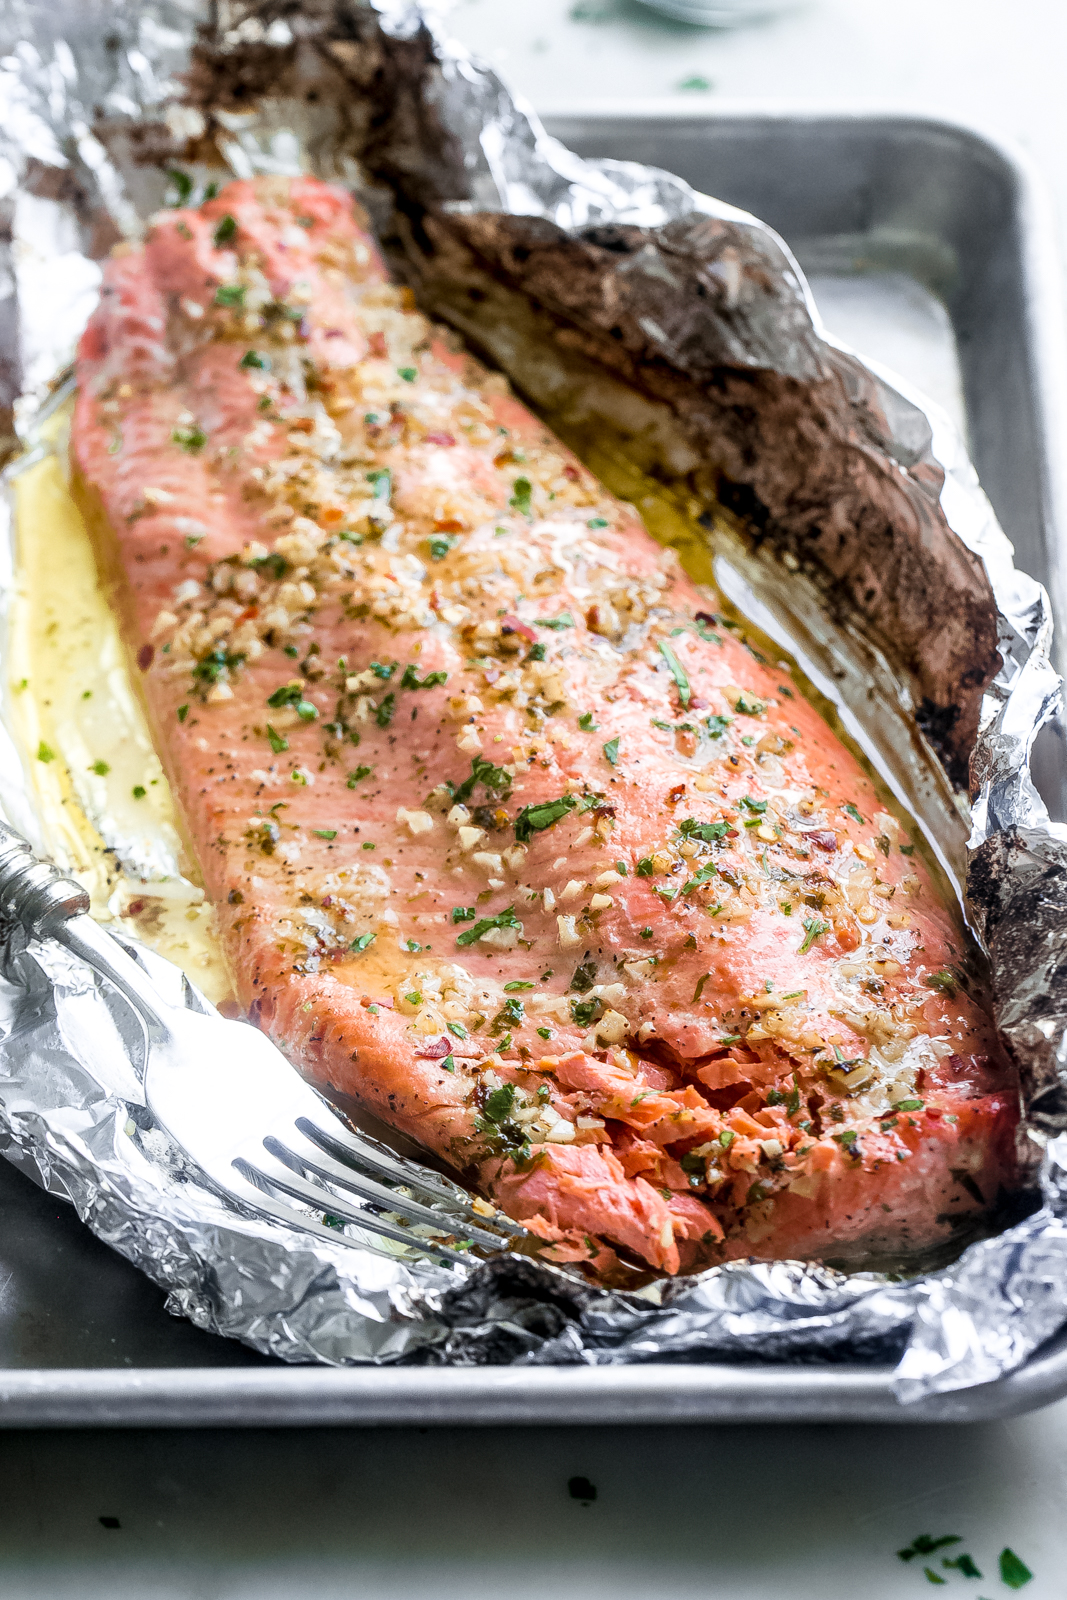 salmon filet prepared in foil with lemon garlic butter sauce drizzled on top